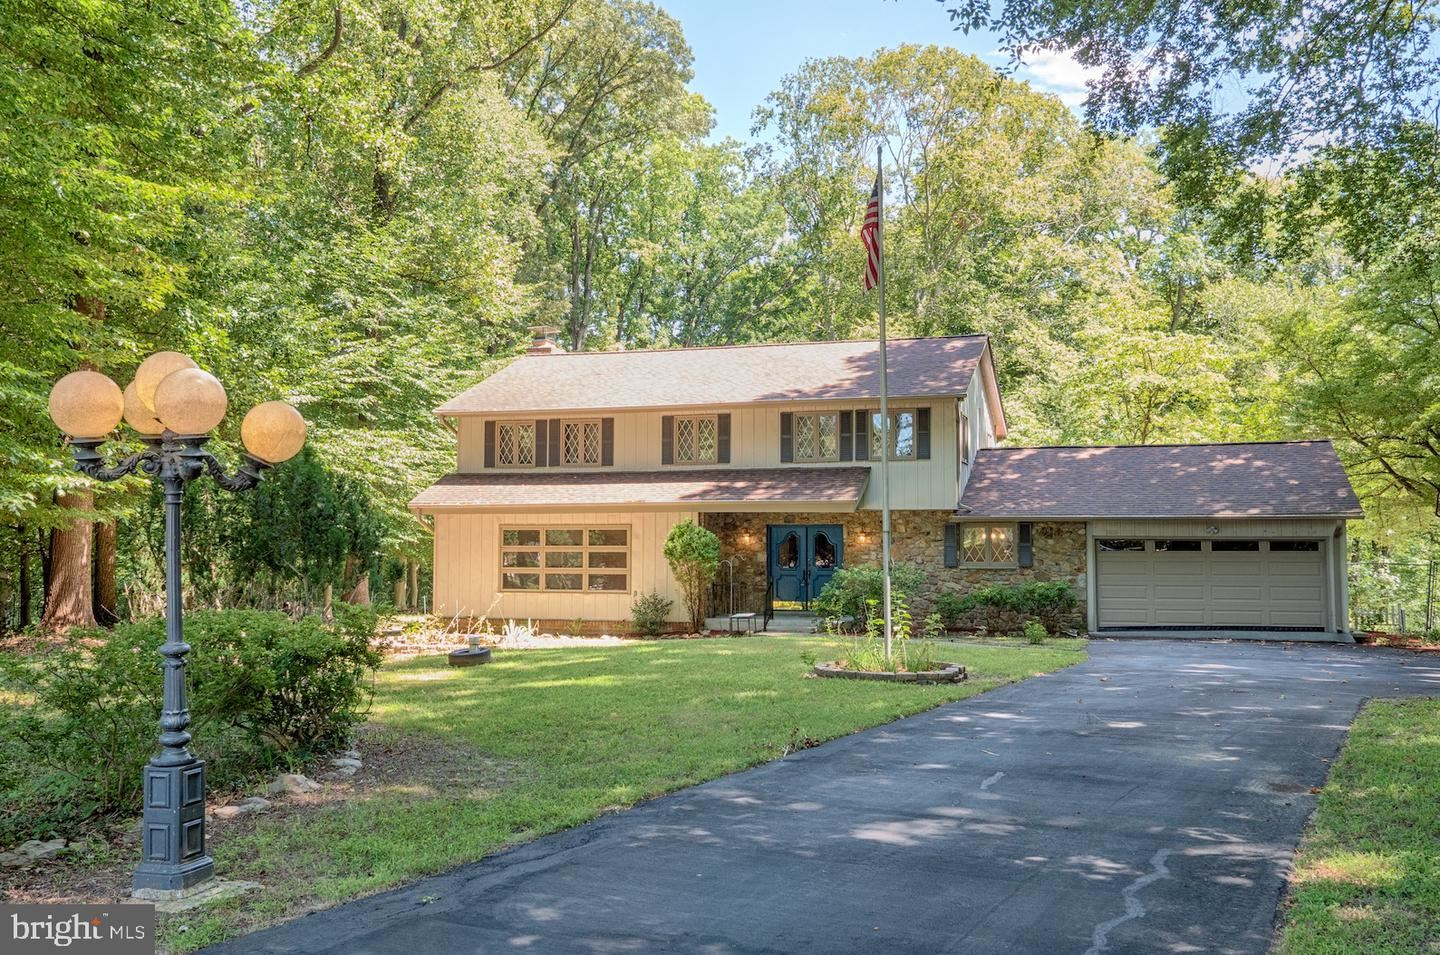 16331 OXFORD CT, Bowie, MD 20715 - #: MDPG548586